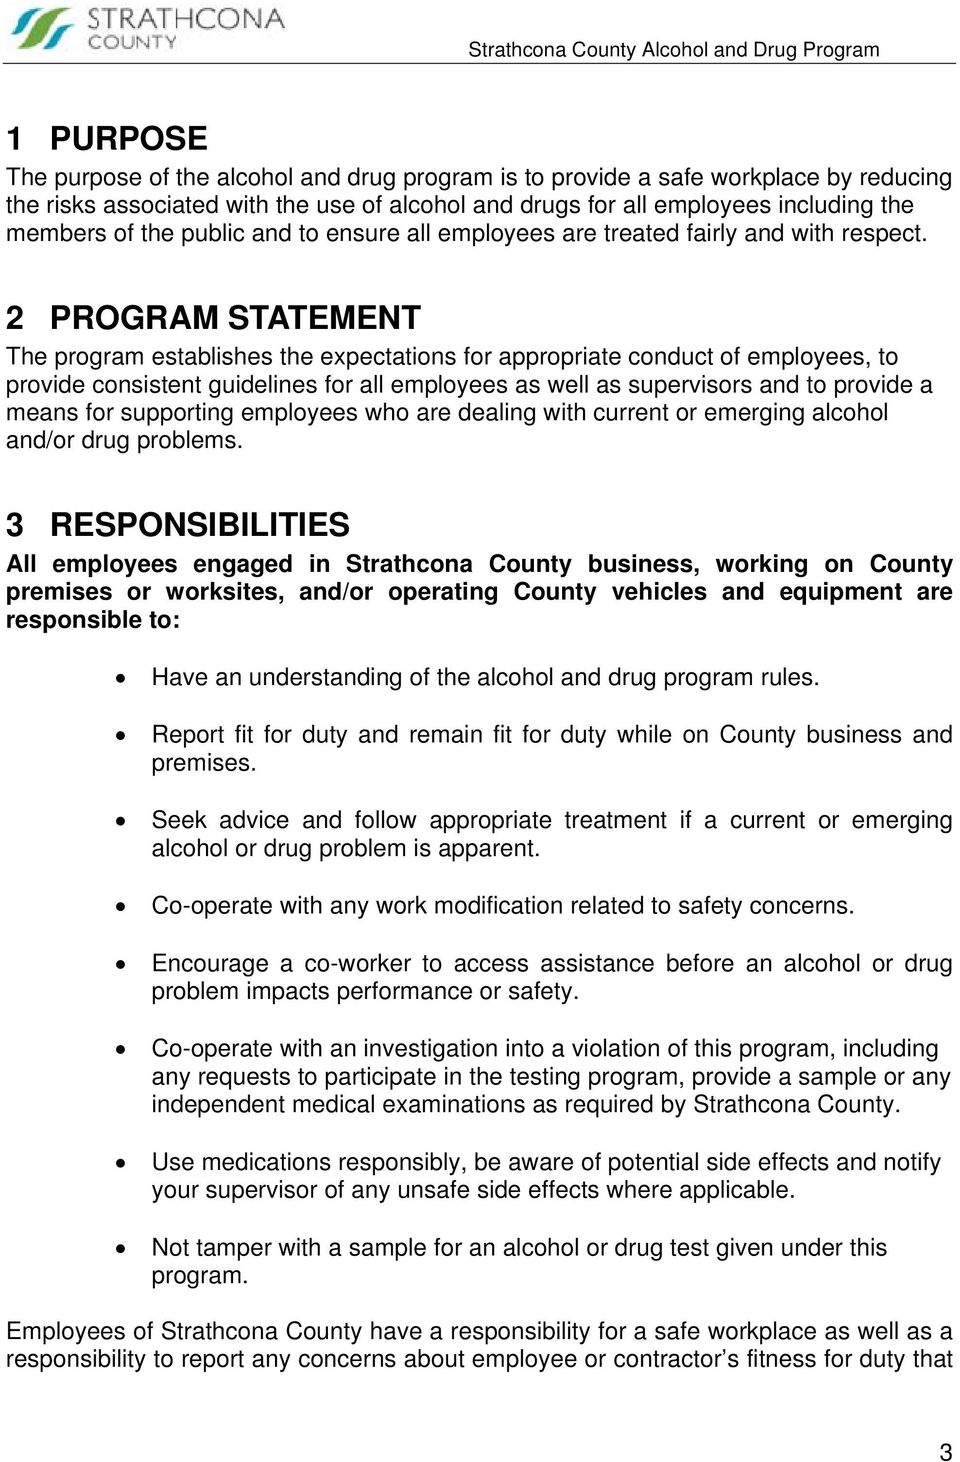 2 PROGRAM STATEMENT The program establishes the expectations for appropriate conduct of employees, to provide consistent guidelines for all employees as well as supervisors and to provide a means for